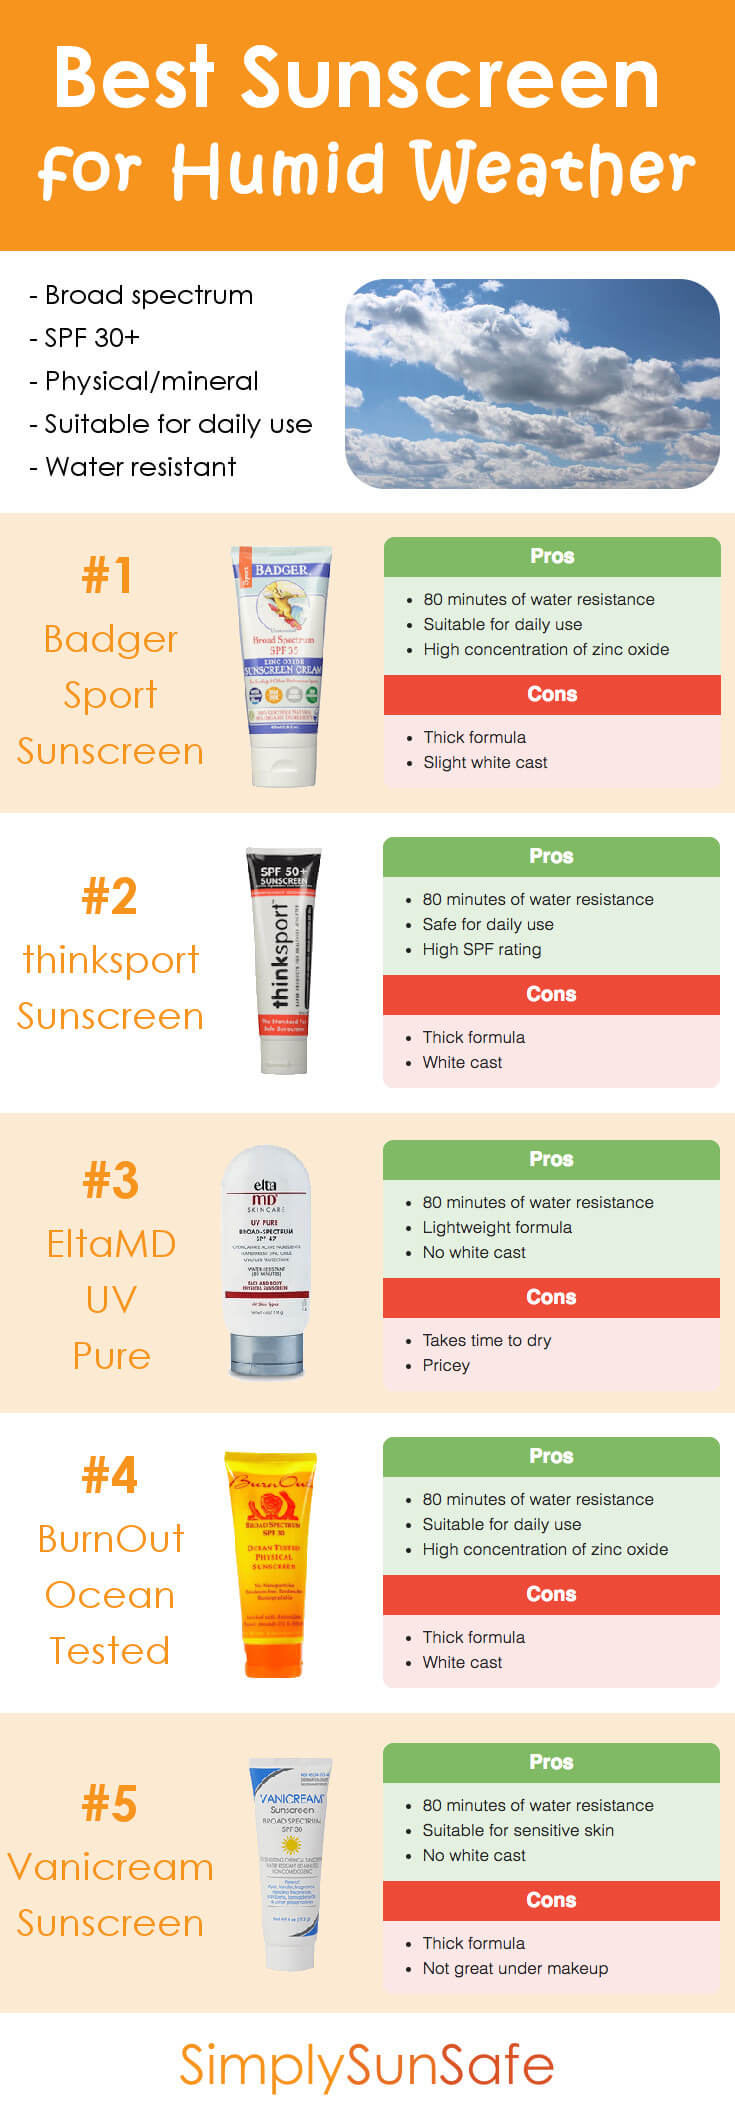 Best Sunscreen for Humid Weather Pinterest